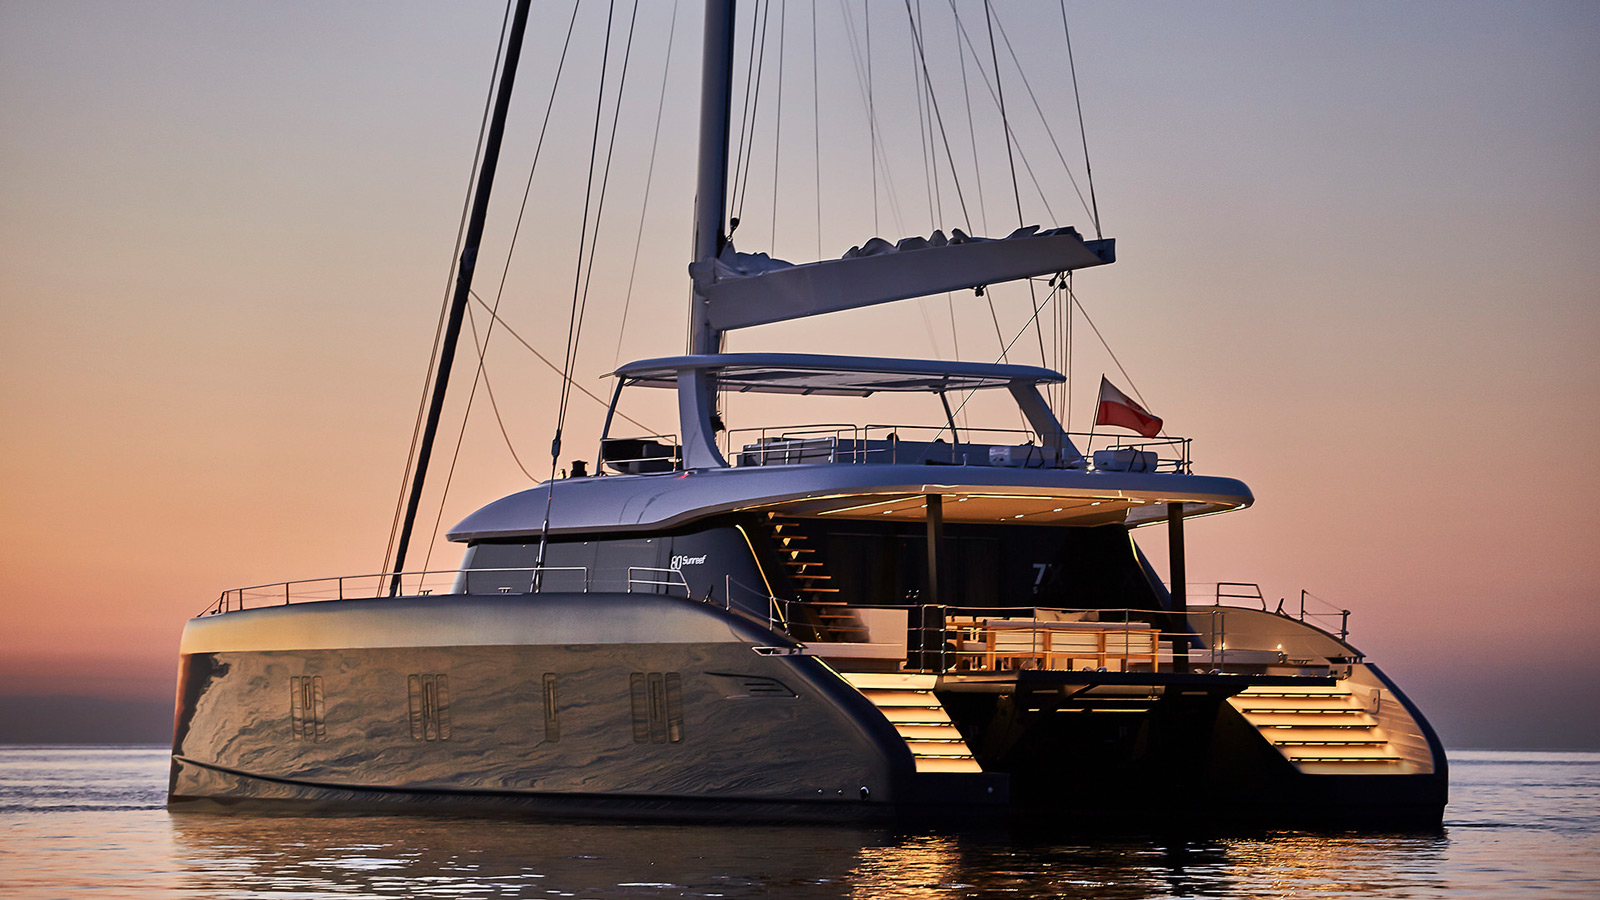 7X Yacht for Charter - IYC